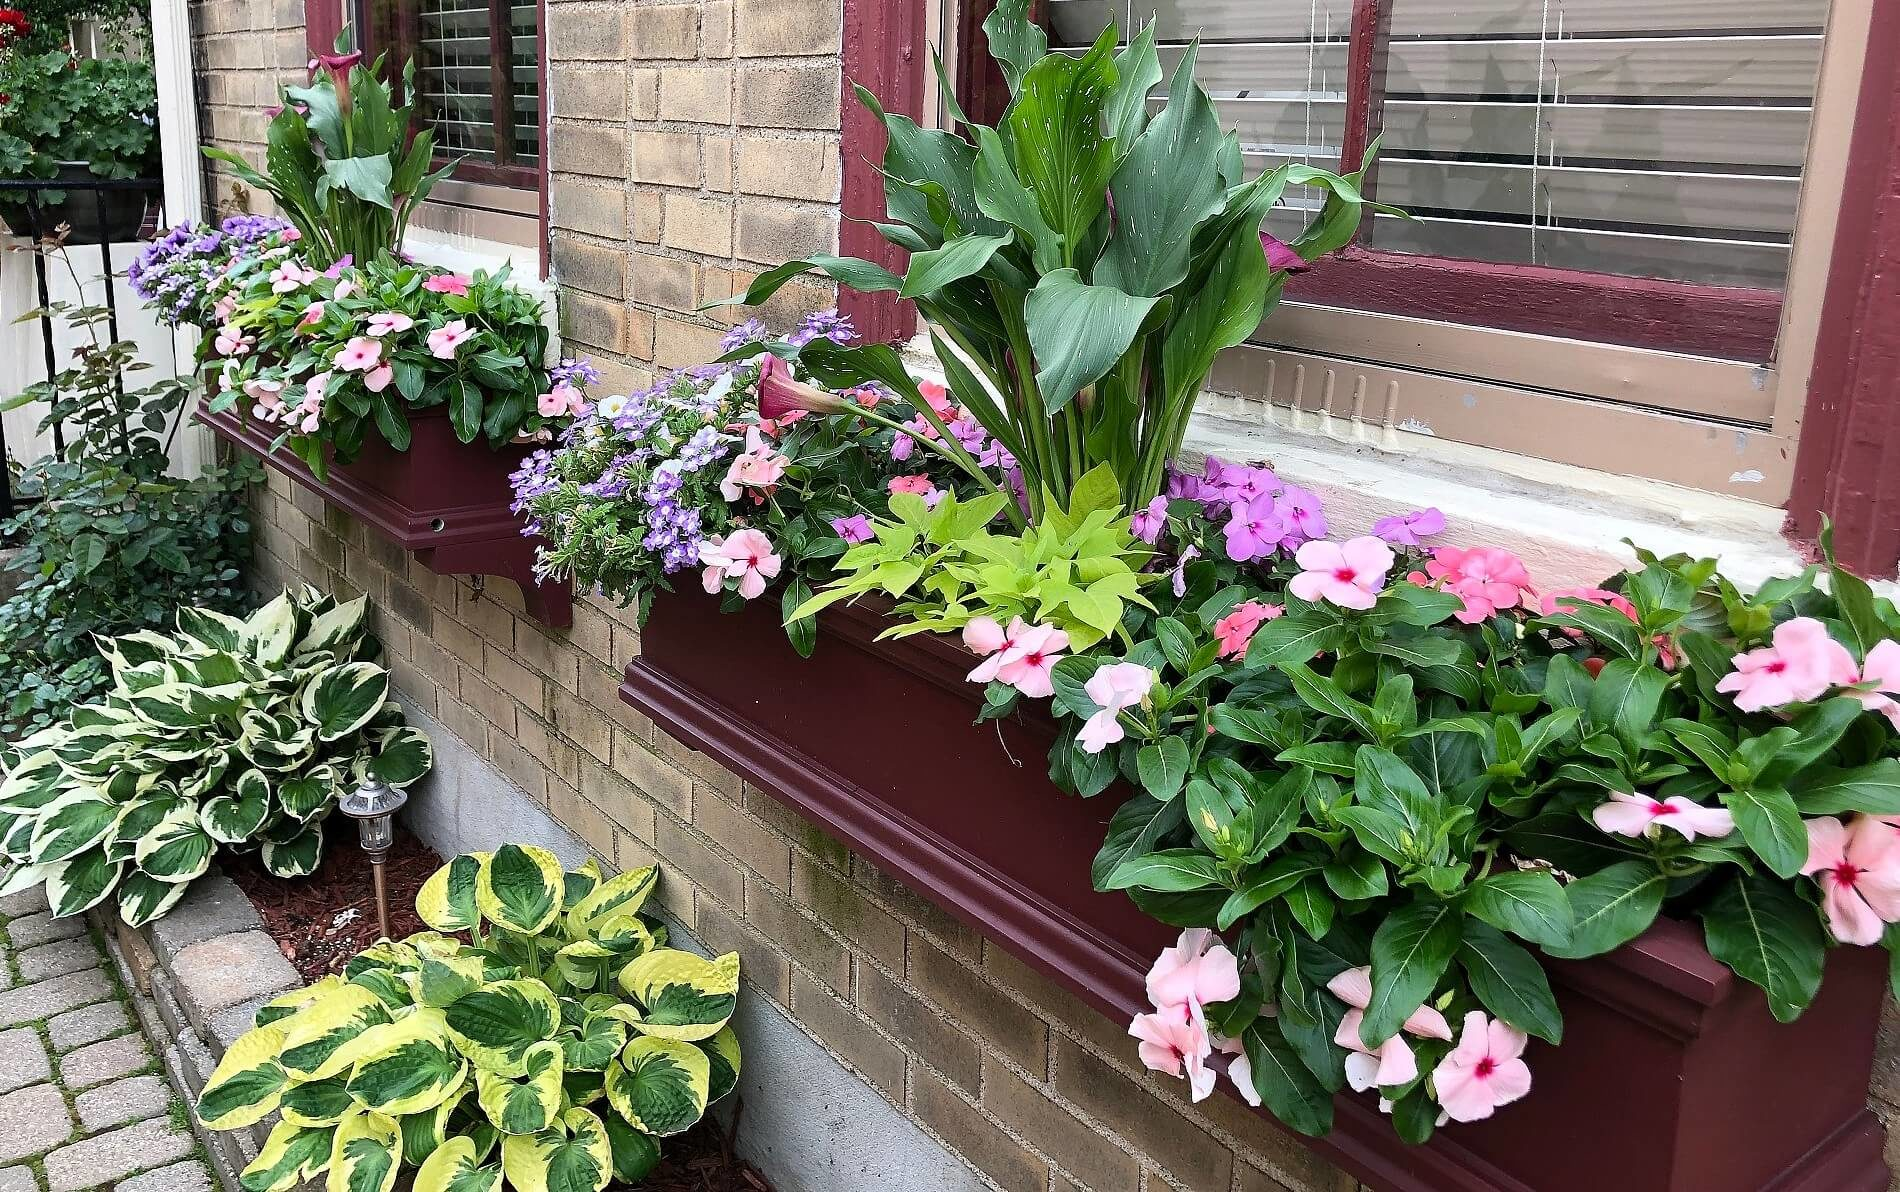 Burgundy window boxes filled with pink and purple flowers